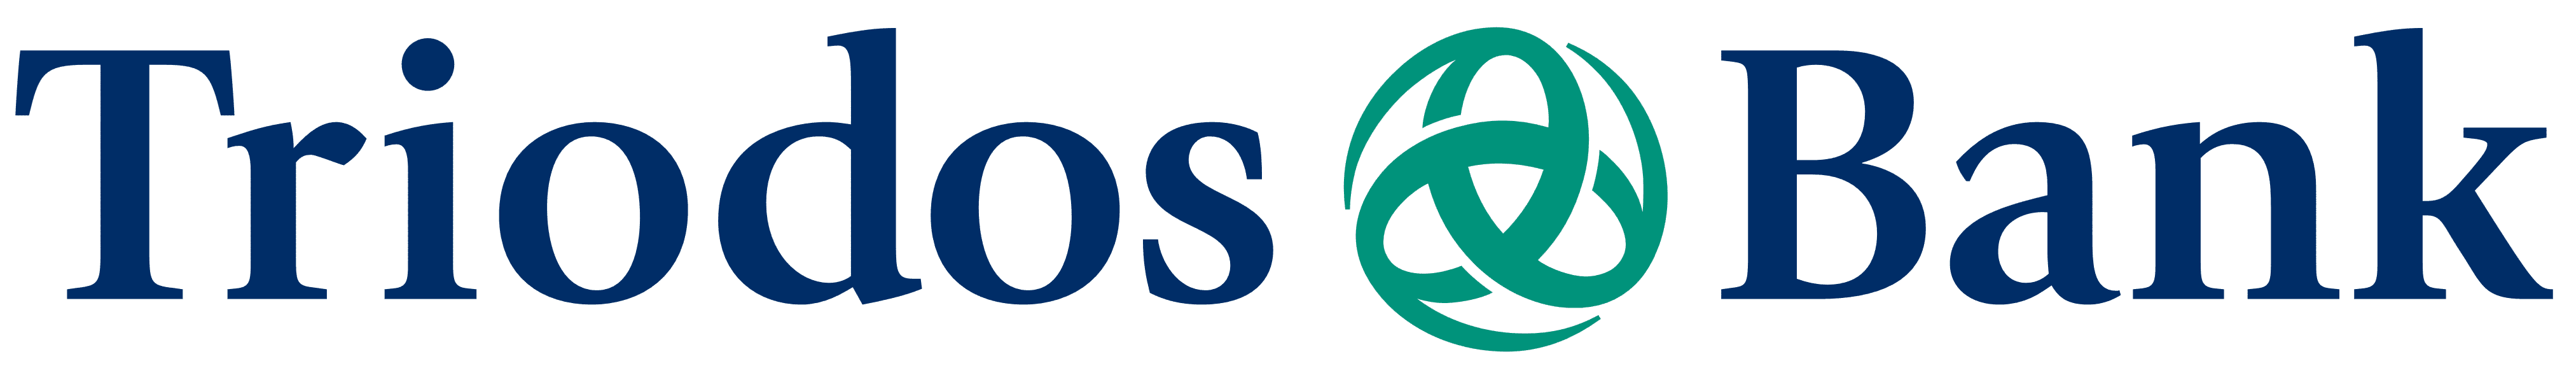 triodos_bank_logo